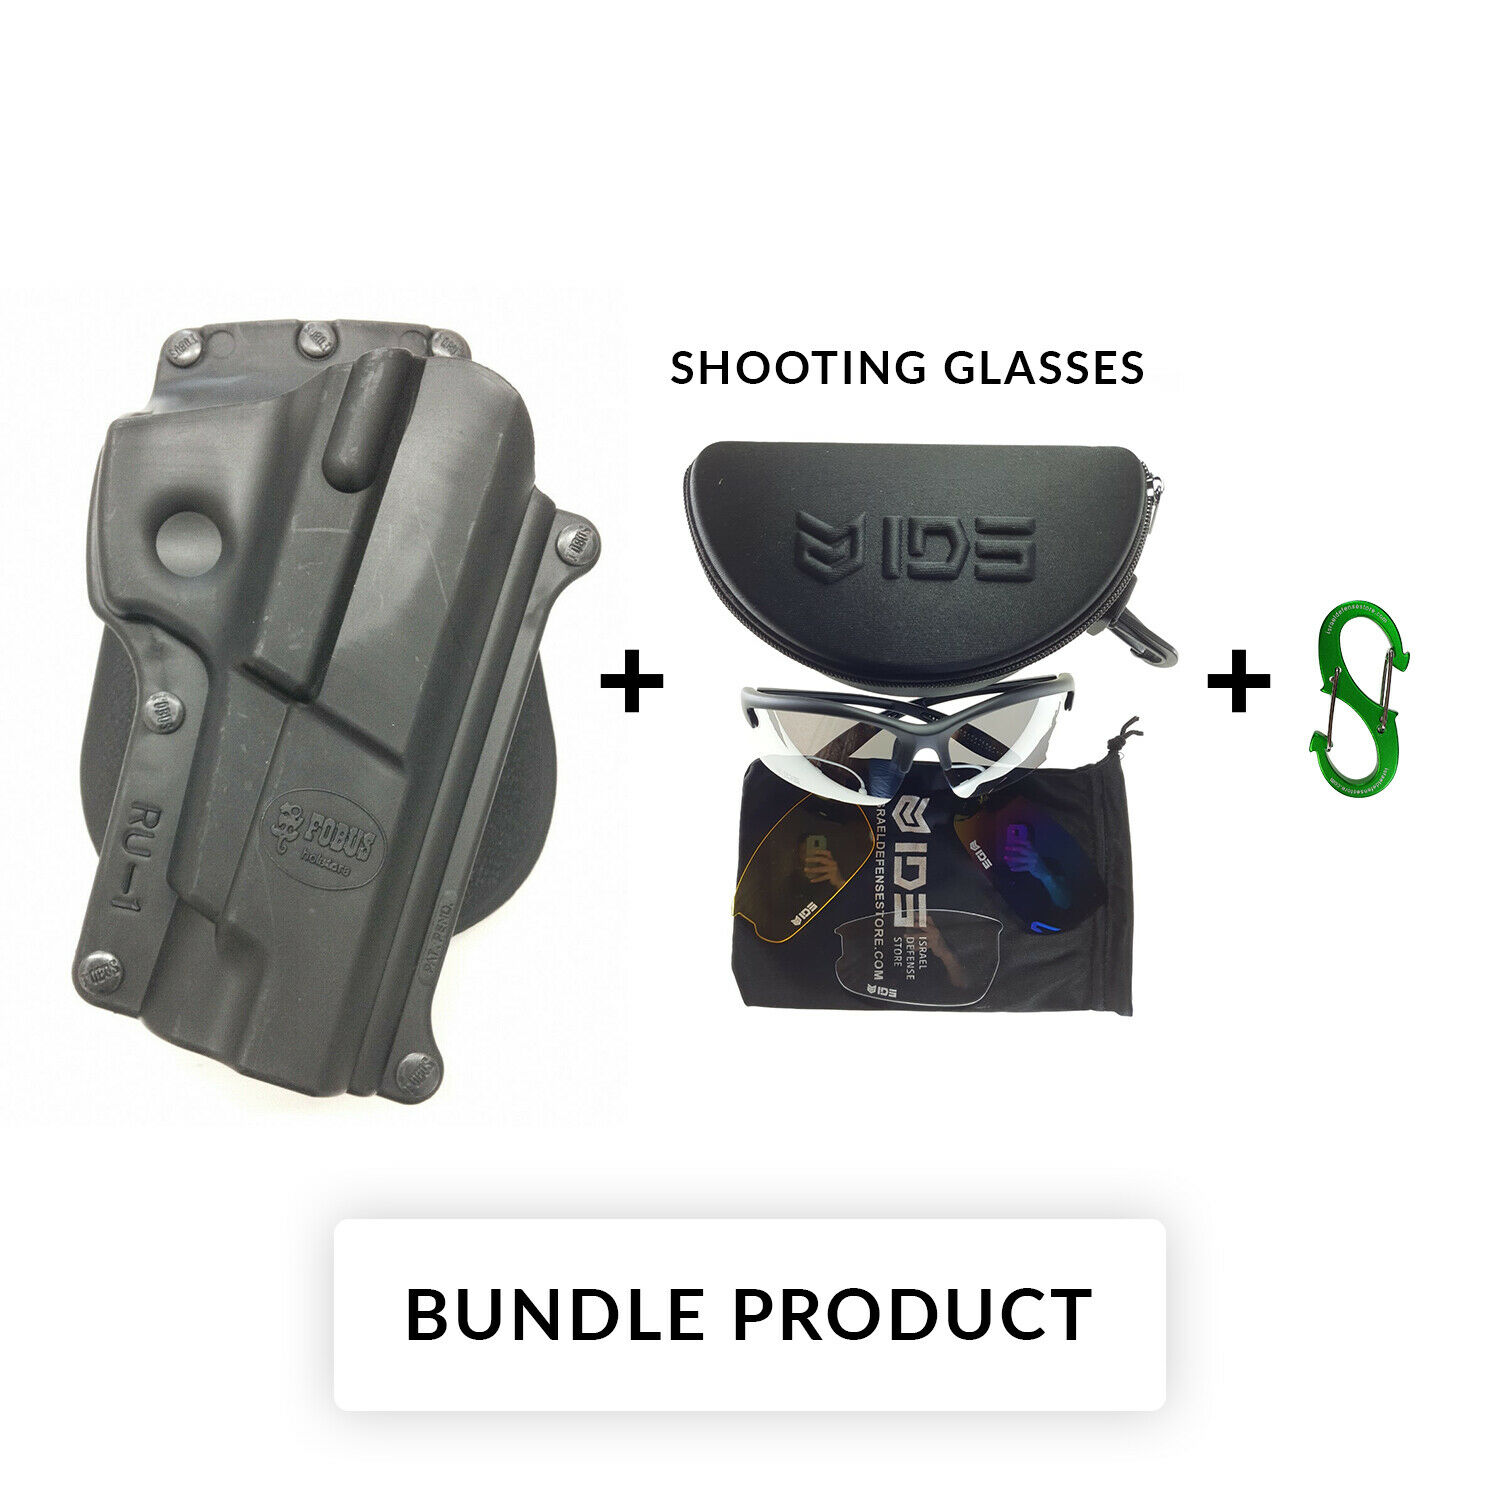 Details about BUNDLE New Fobus RU1 Black Paddle Holster Right Hand For  Ruger P89 Polymer